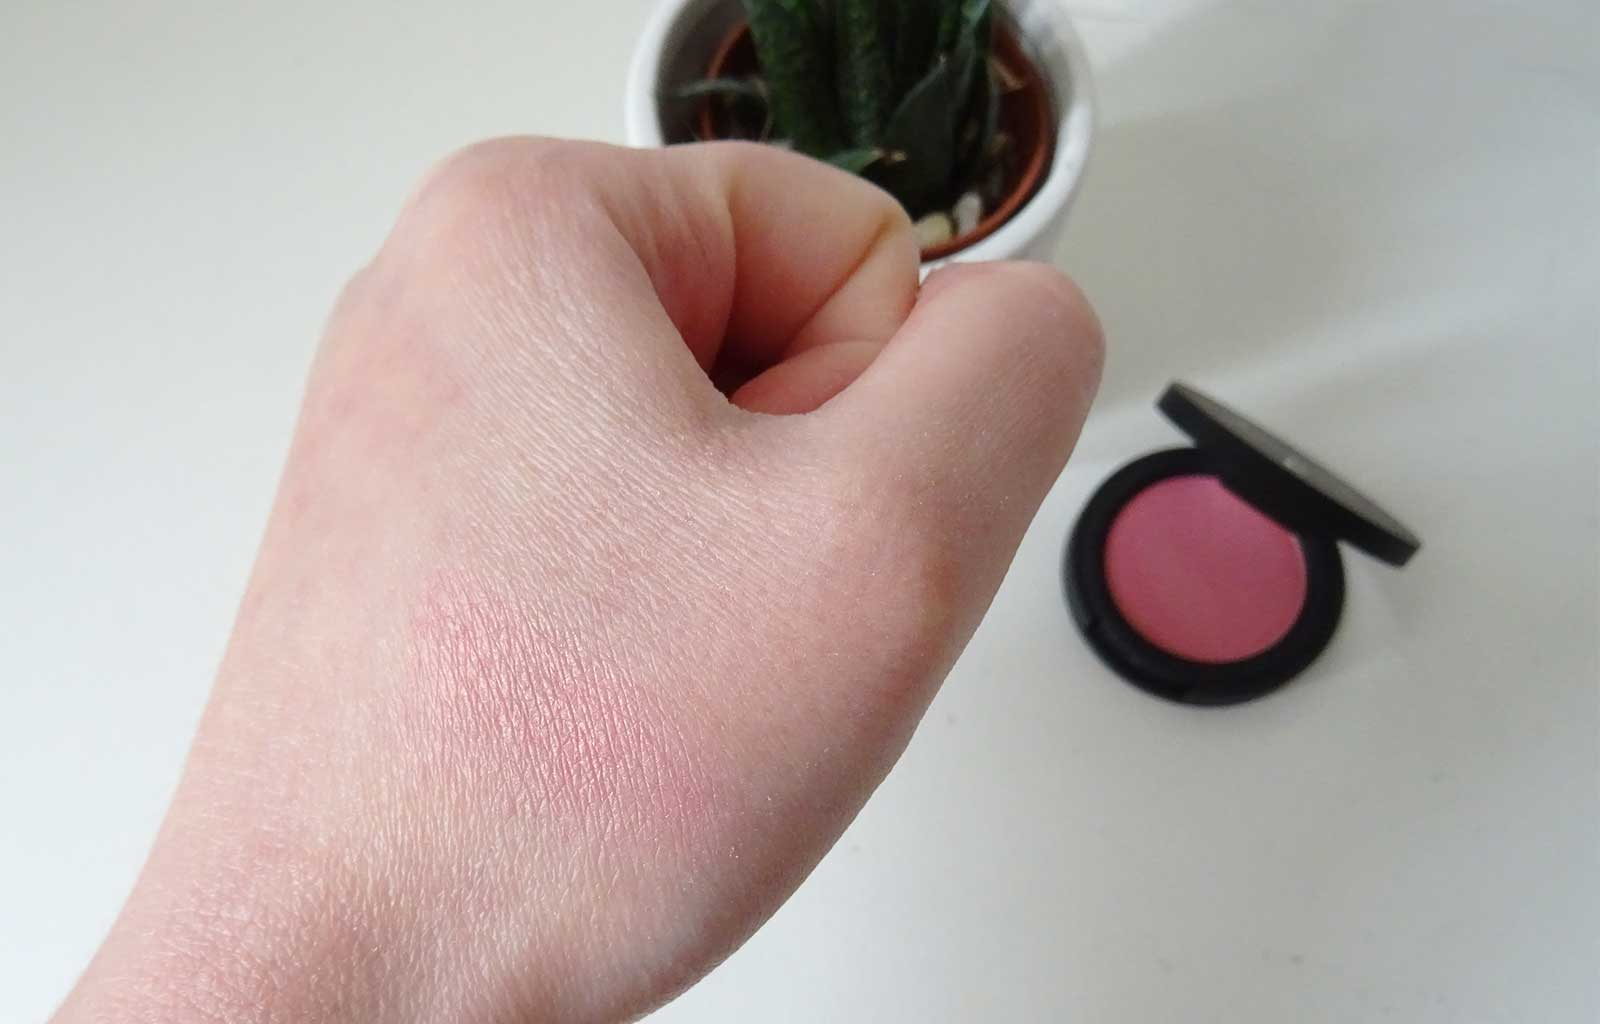 Maquillage P.Lab Beauty blush rose aux joues